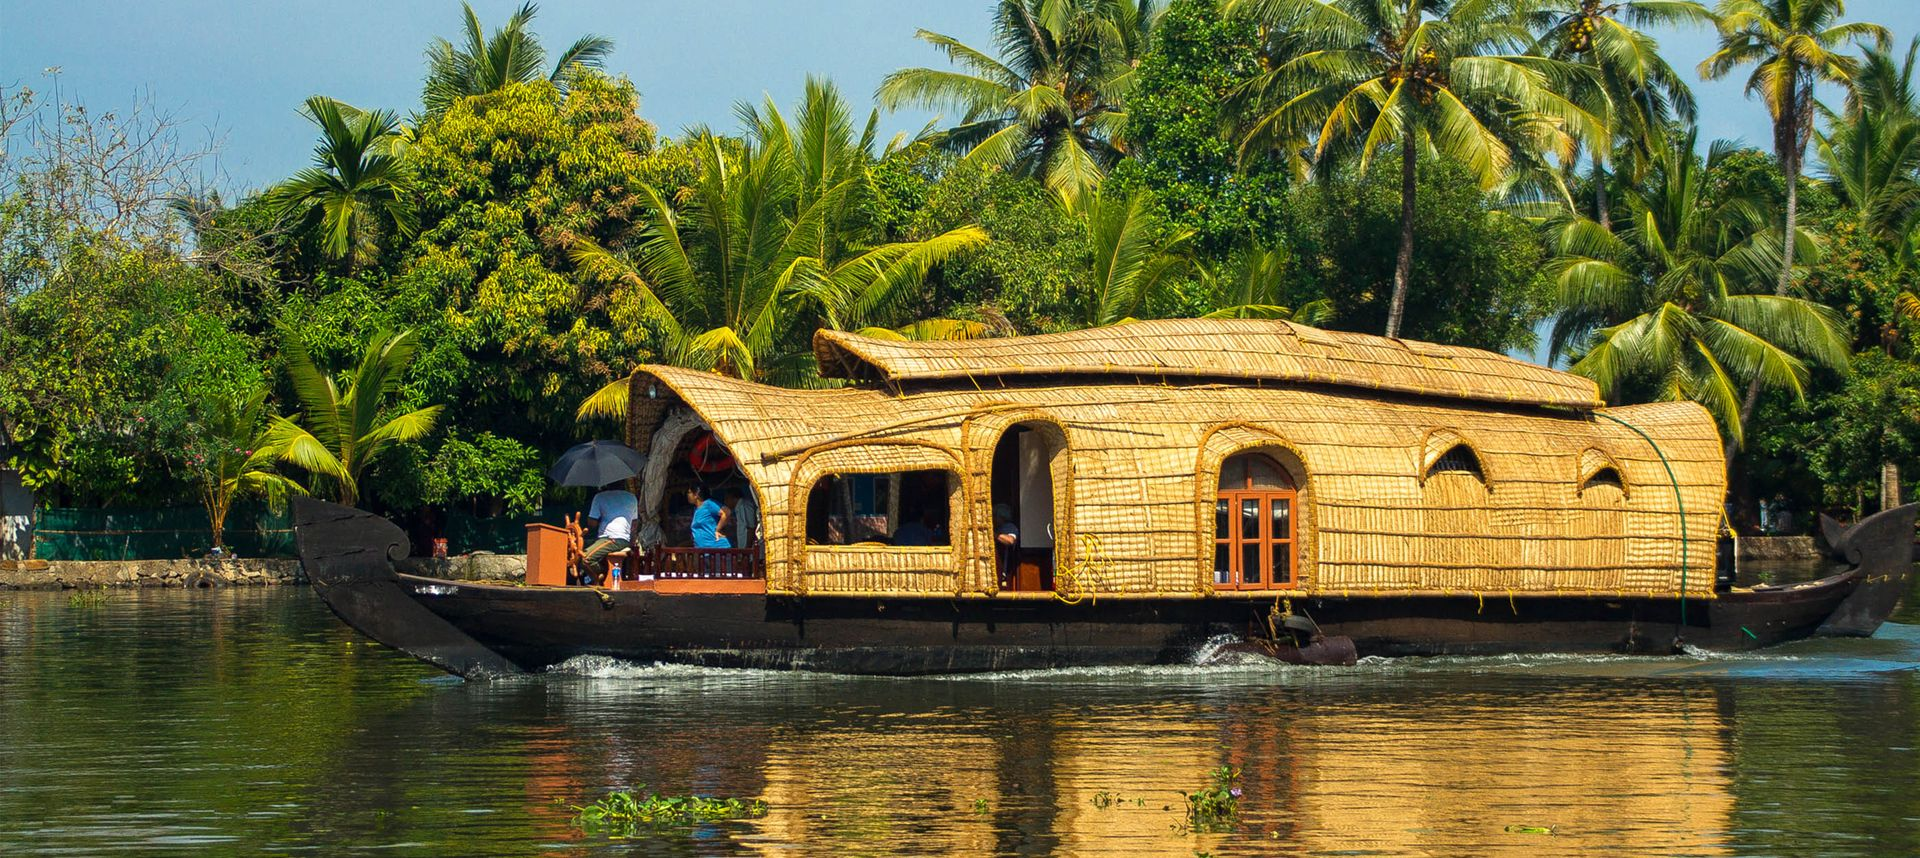 Enjoy a boat trip anywhere in the world, like this houseboat in Kerala, India (Shutterstock)